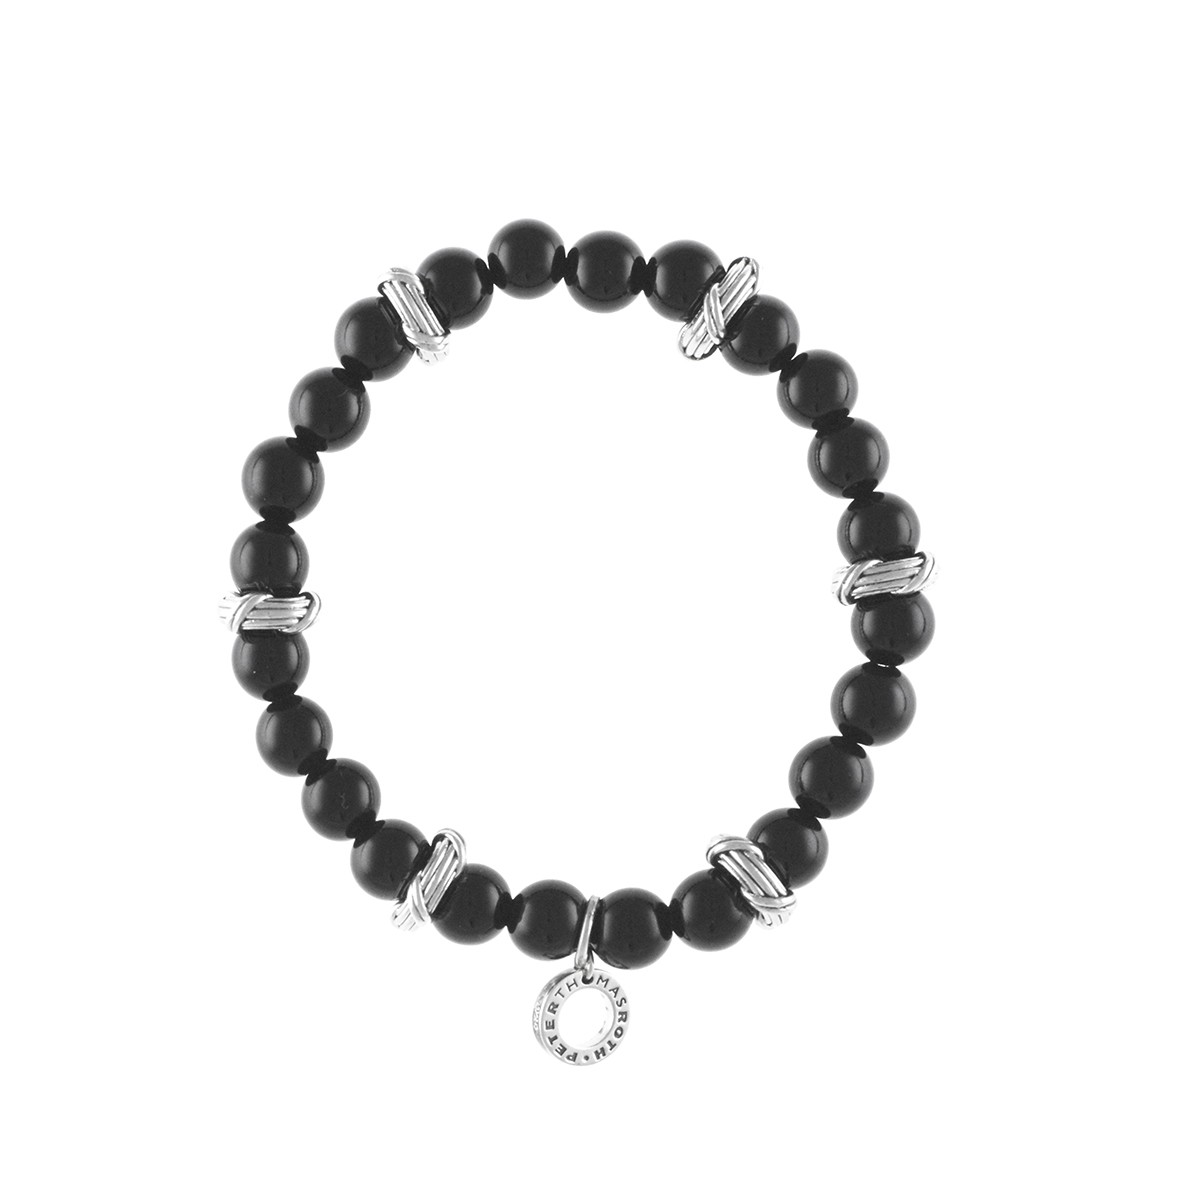 Ribbon Amp Reed Bead Bracelet In Black Onyx And Sterling Silver